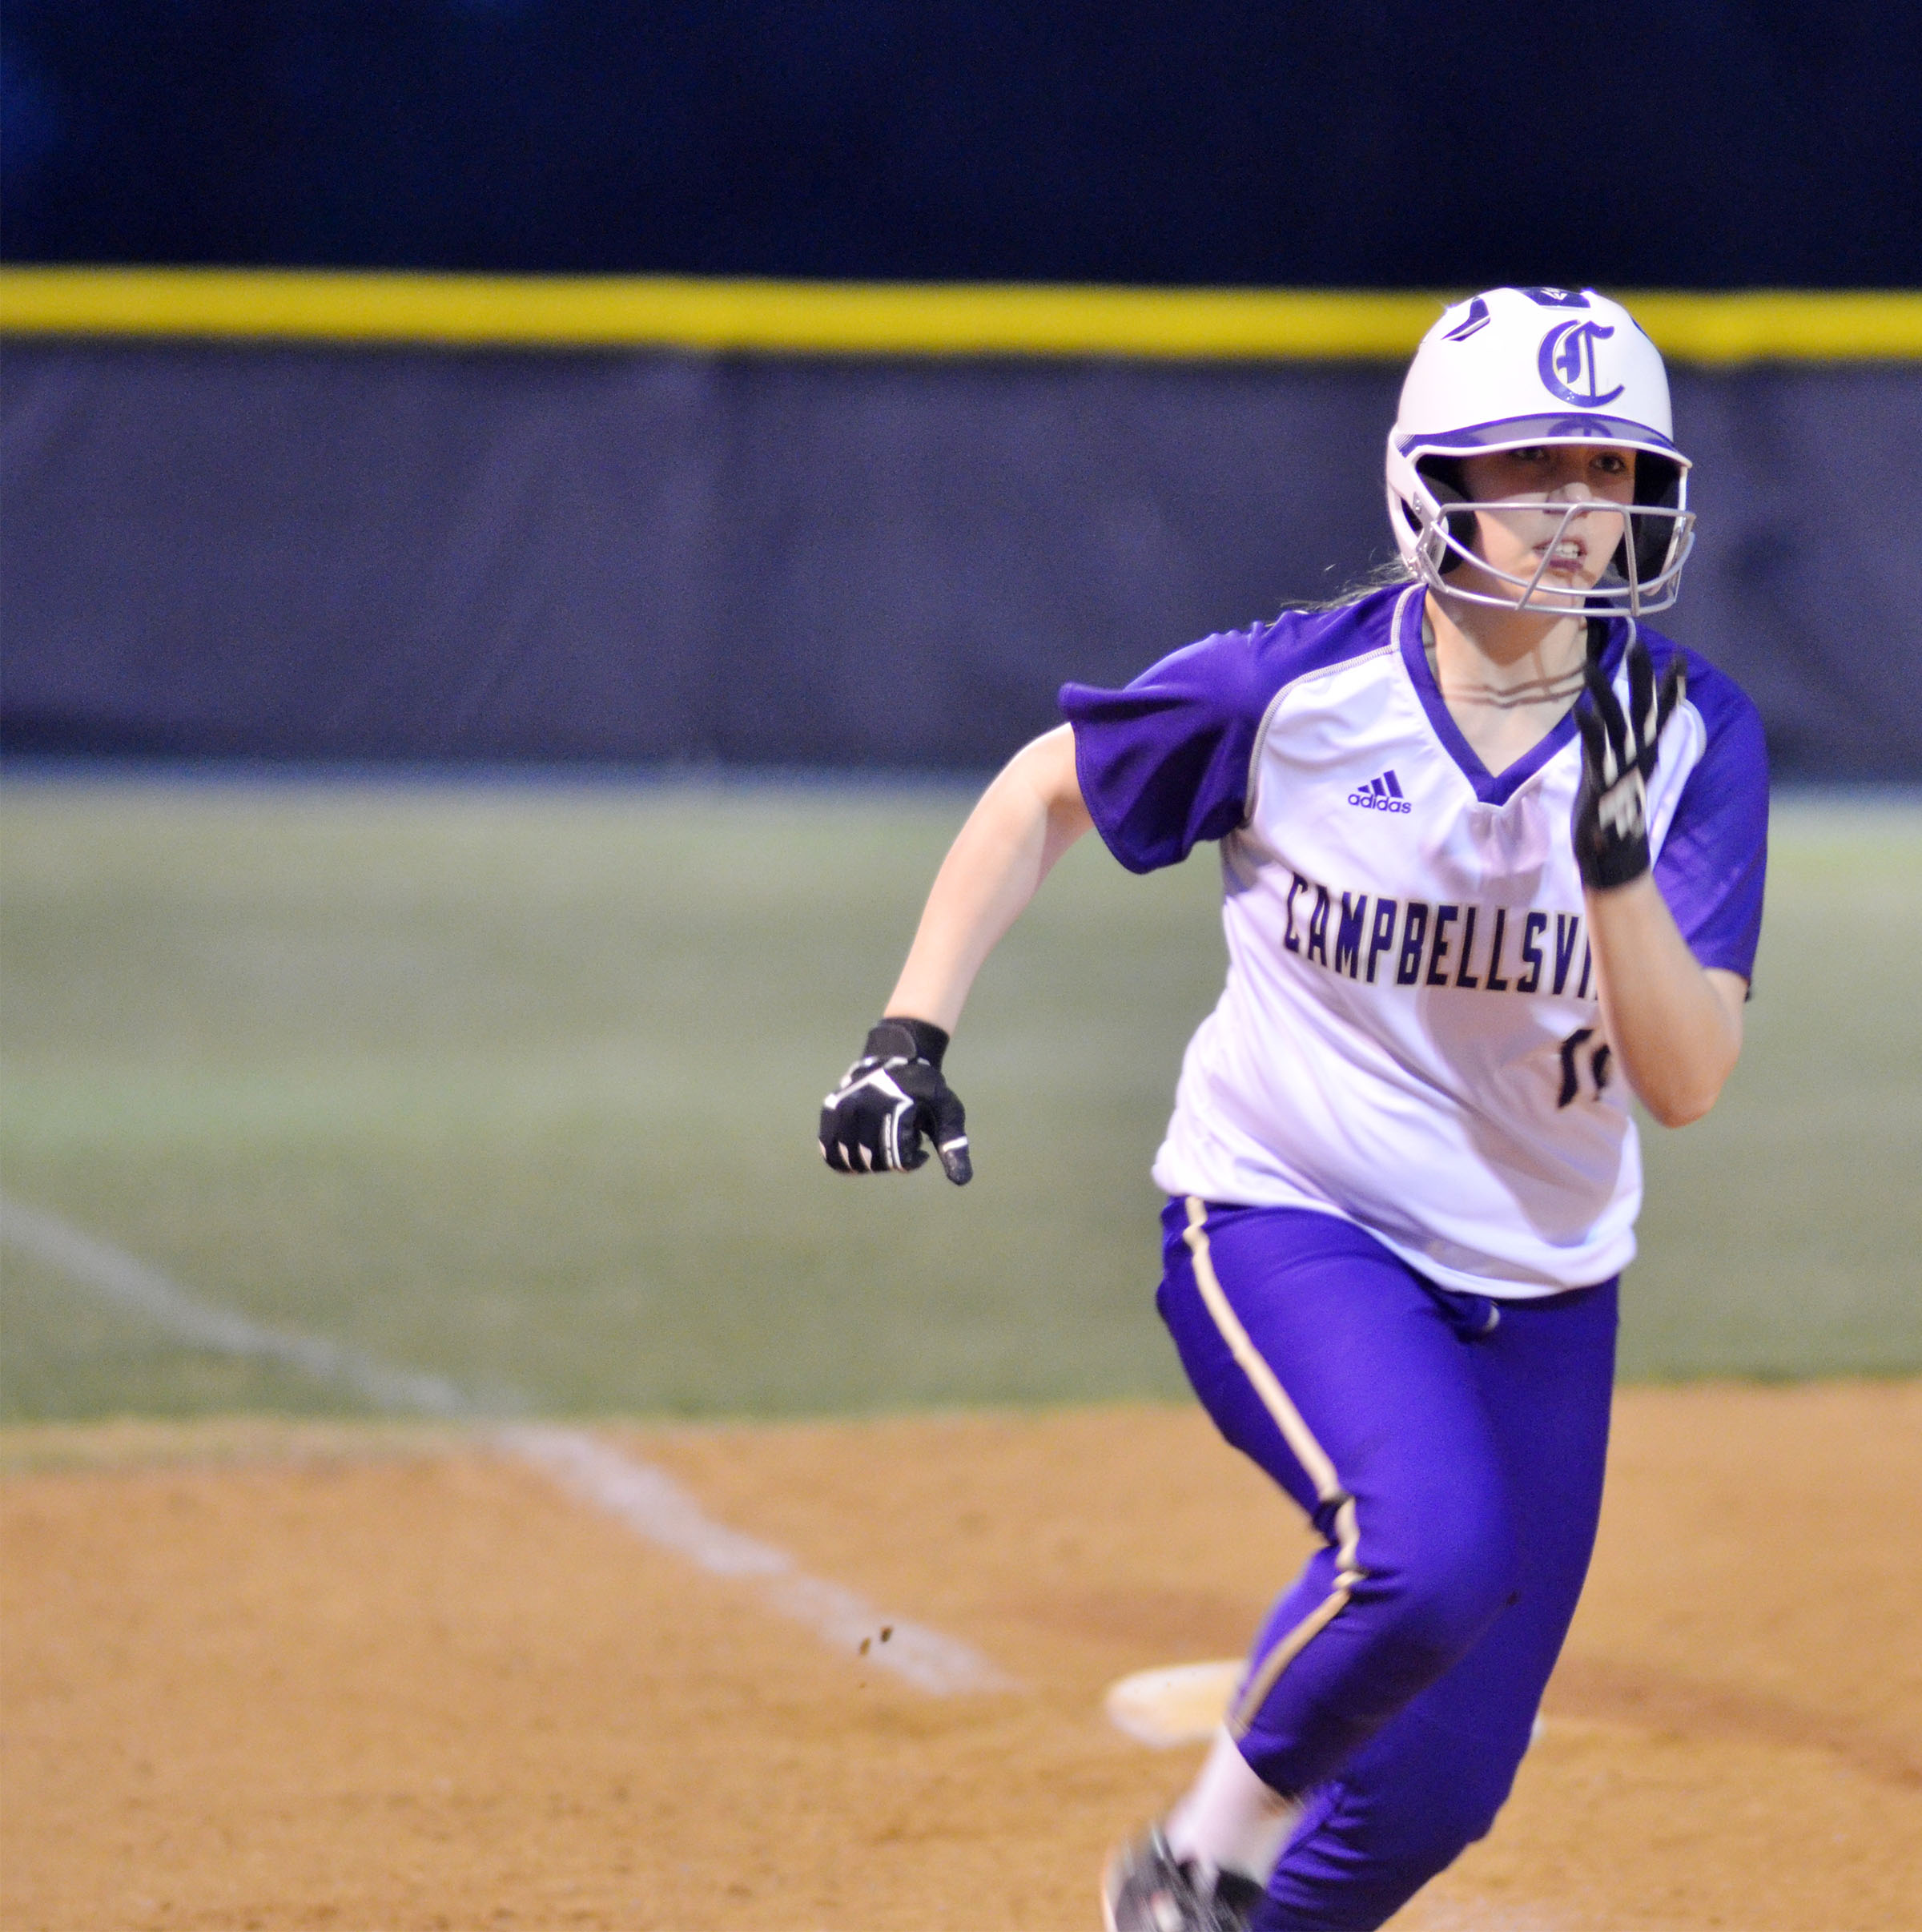 Campbellsville Middle School eighth-grader Abi Wiedewitsch runs home.